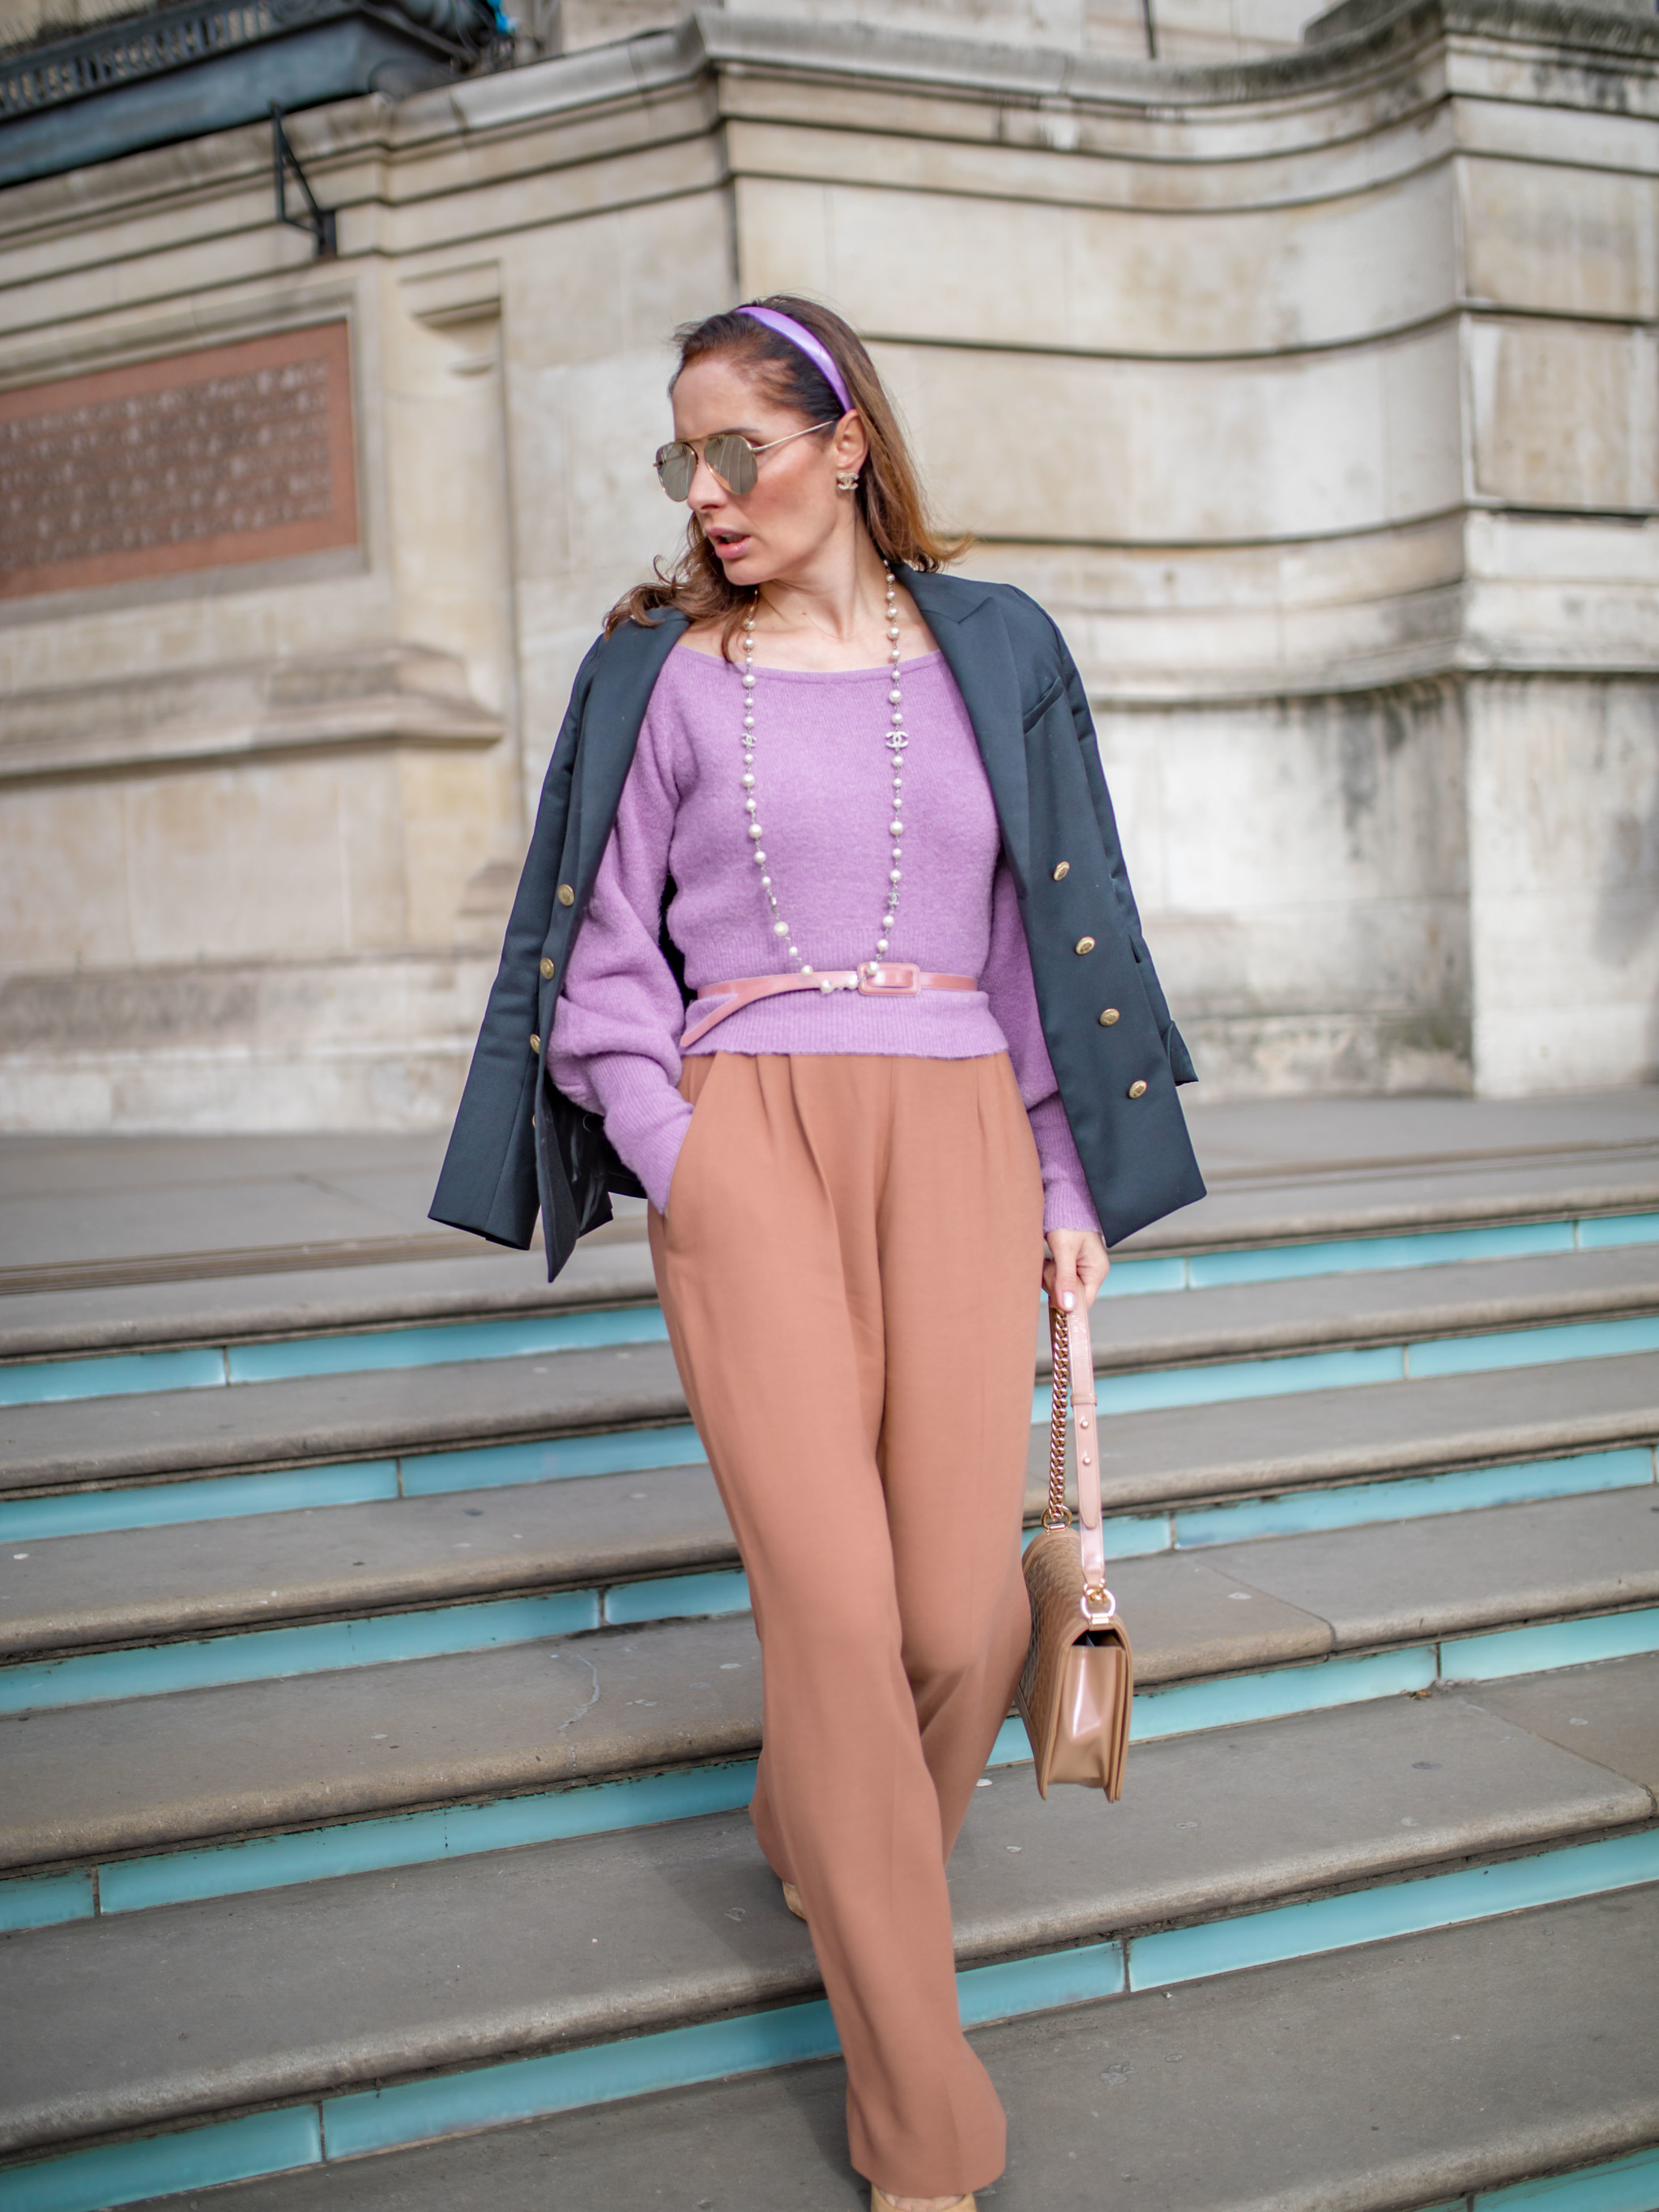 High waist pants to make your legs look longer by Chi Journal